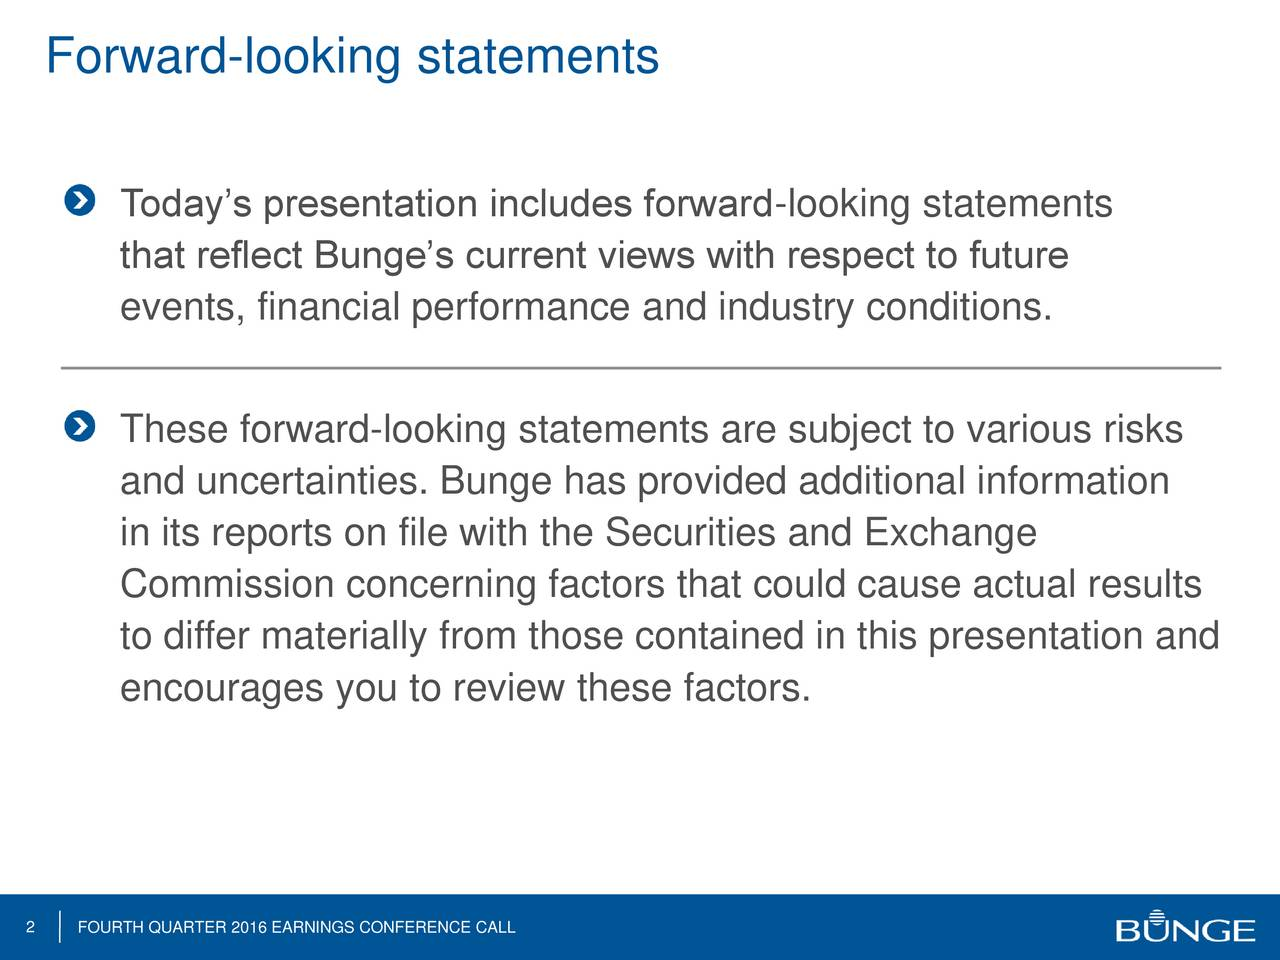 Todays presentation includes forward-looking statements that reflect Bunges current views with respect to future events, financial performance and industry conditions. These forward-looking statements are subject to various risks and uncertainties. Bunge has provided additional information in its reports on file with the Securities and Exchange Commission concerning factors that could cause actual results to differ materially from those contained in this presentation and encourages you to review these factors. 2 FOURTH QUARTER 2016 EARNINGS CONFERENCE CALL